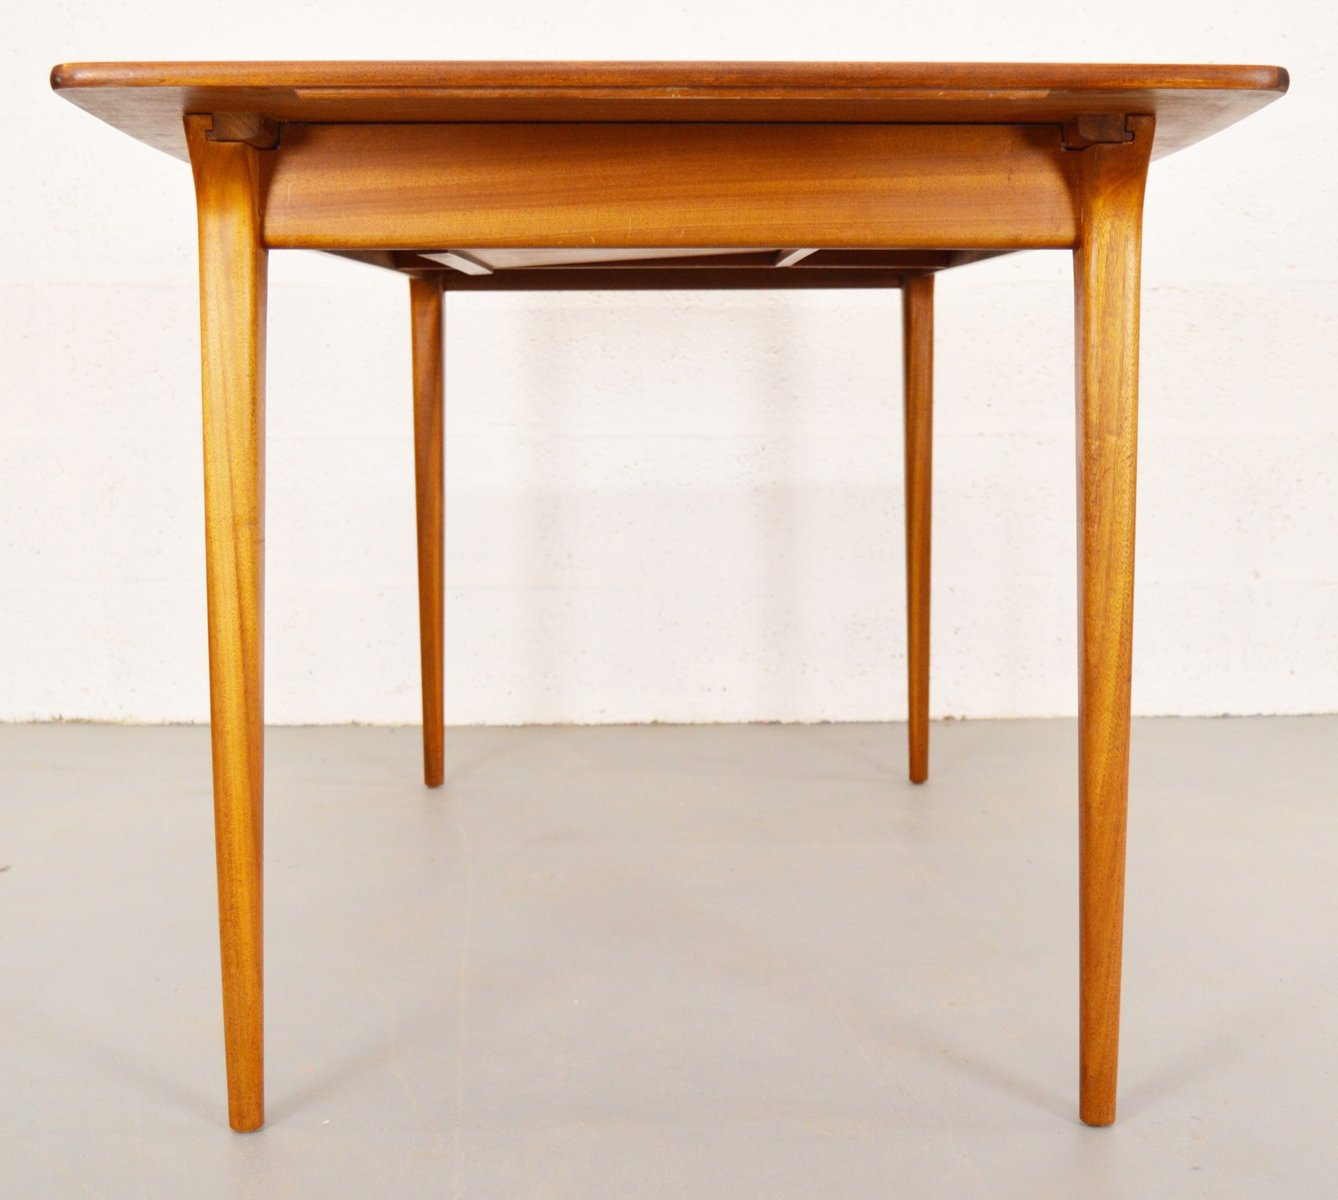 Mid Century Extendable Boat Shaped Teak Dining Table From McIntosh For Sale A